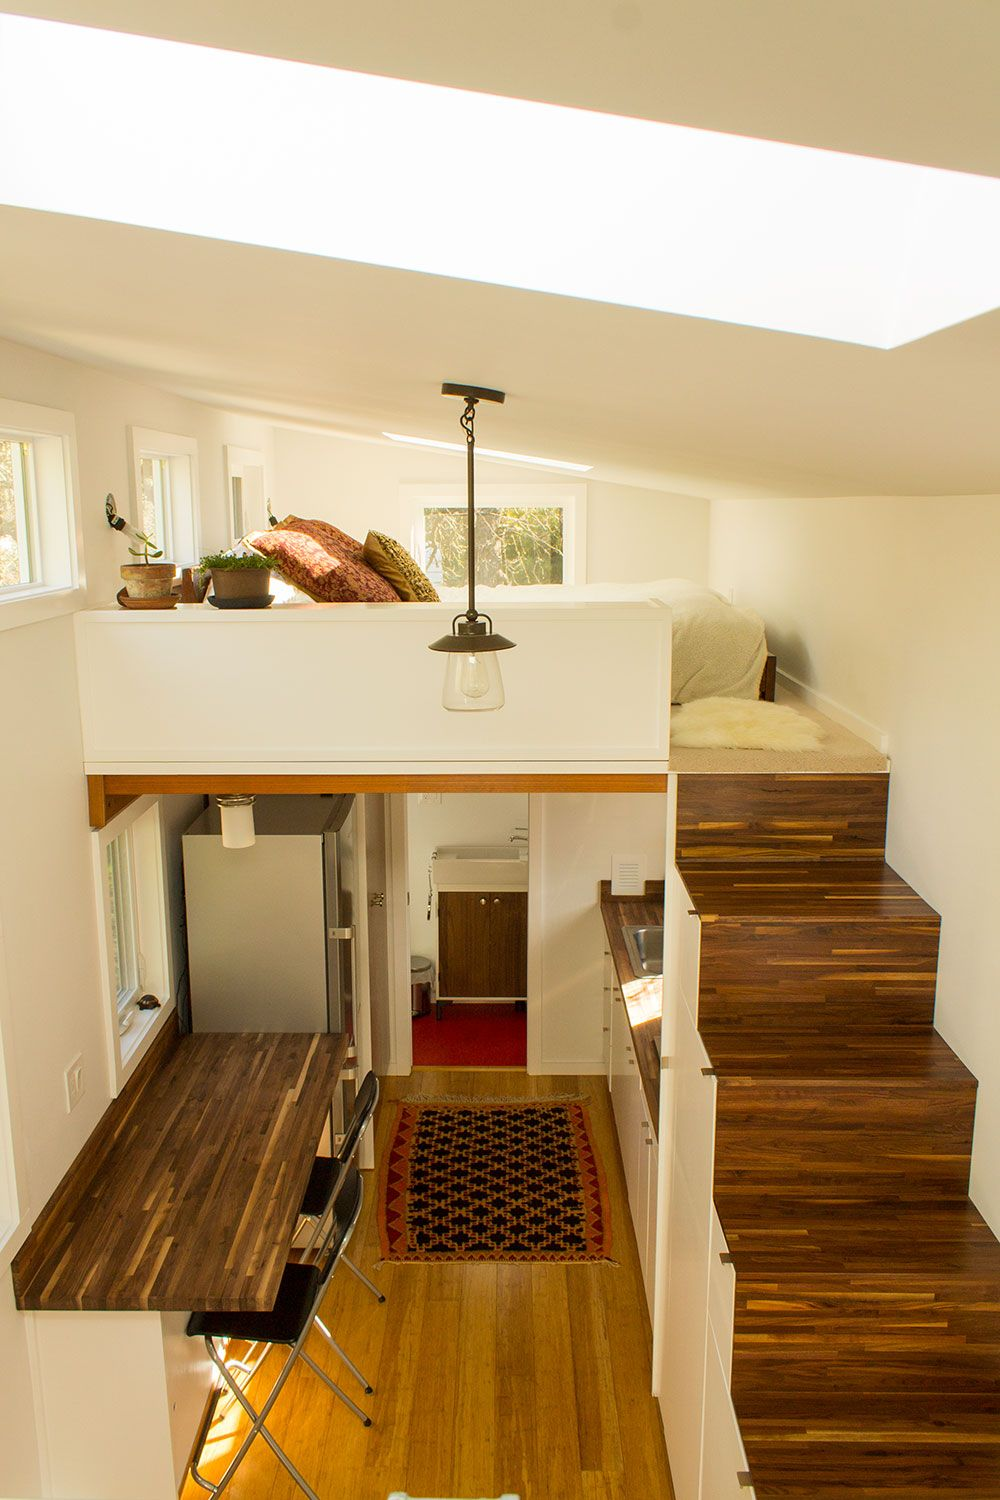 Tiny Home Traits 5 Features Every Small Space Needs Tiny House